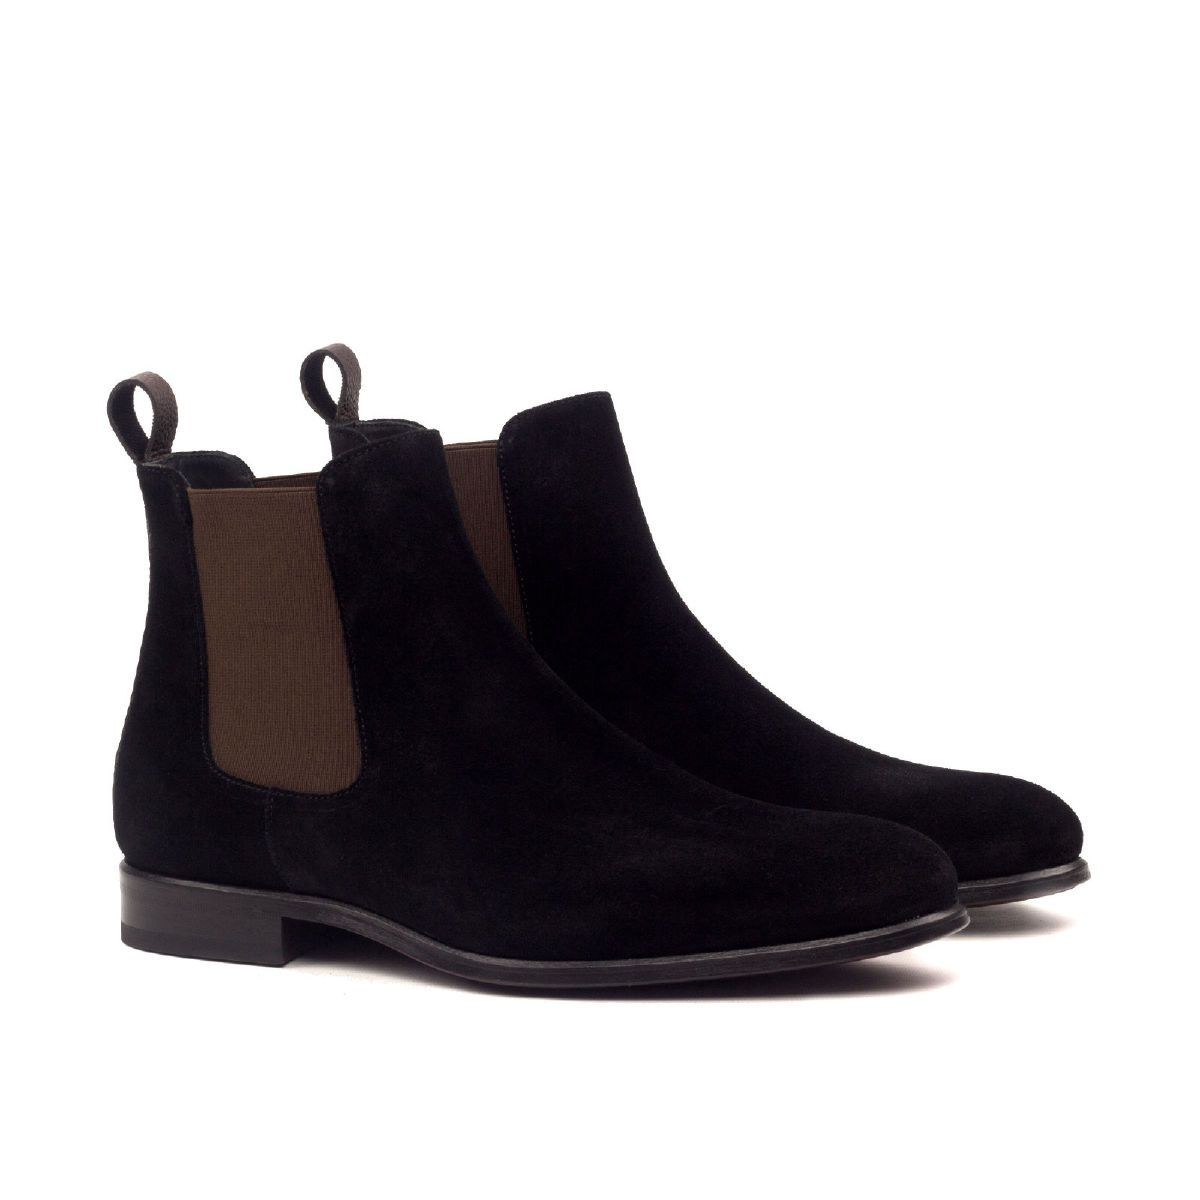 Louis XVI calf leather Chelsea boot